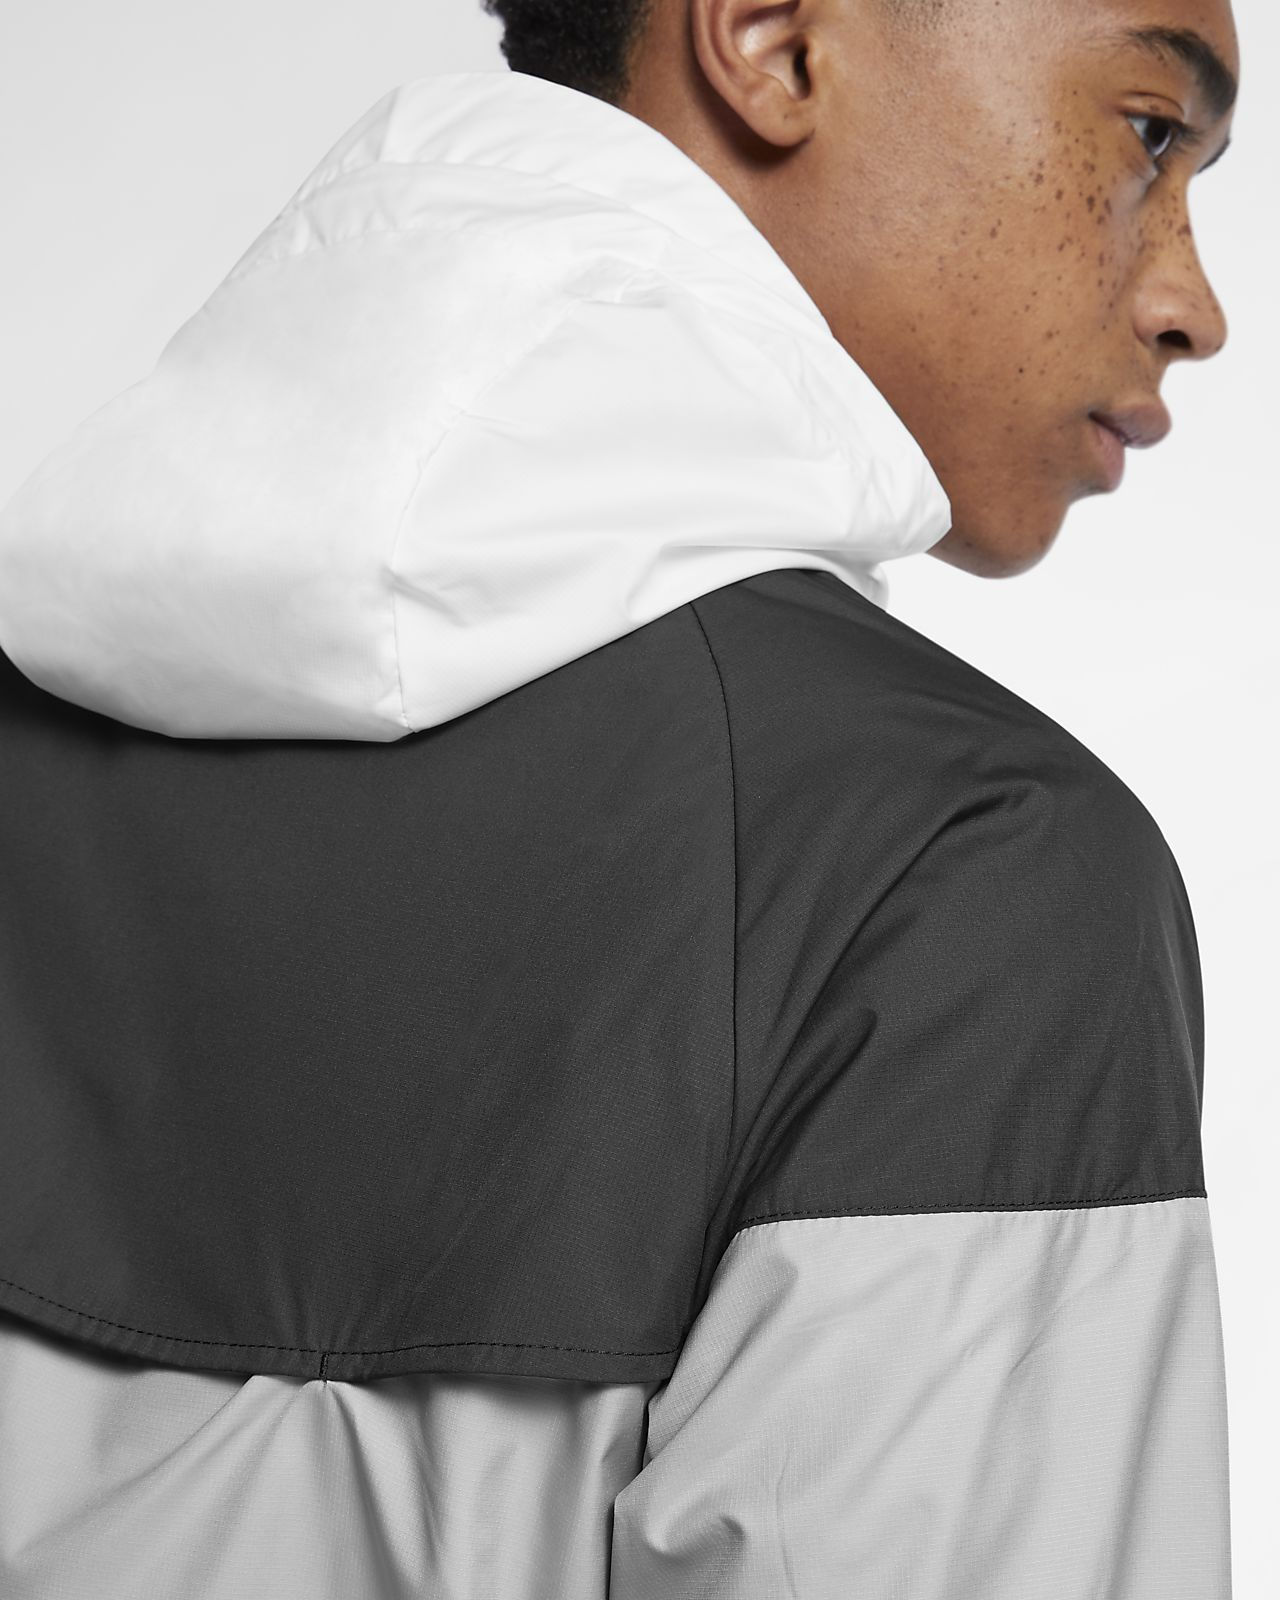 Low Resolution Nike Sportswear Windrunner Men s Jacket Nike Sportswear  Windrunner Men s Jacket 37dc2ea59